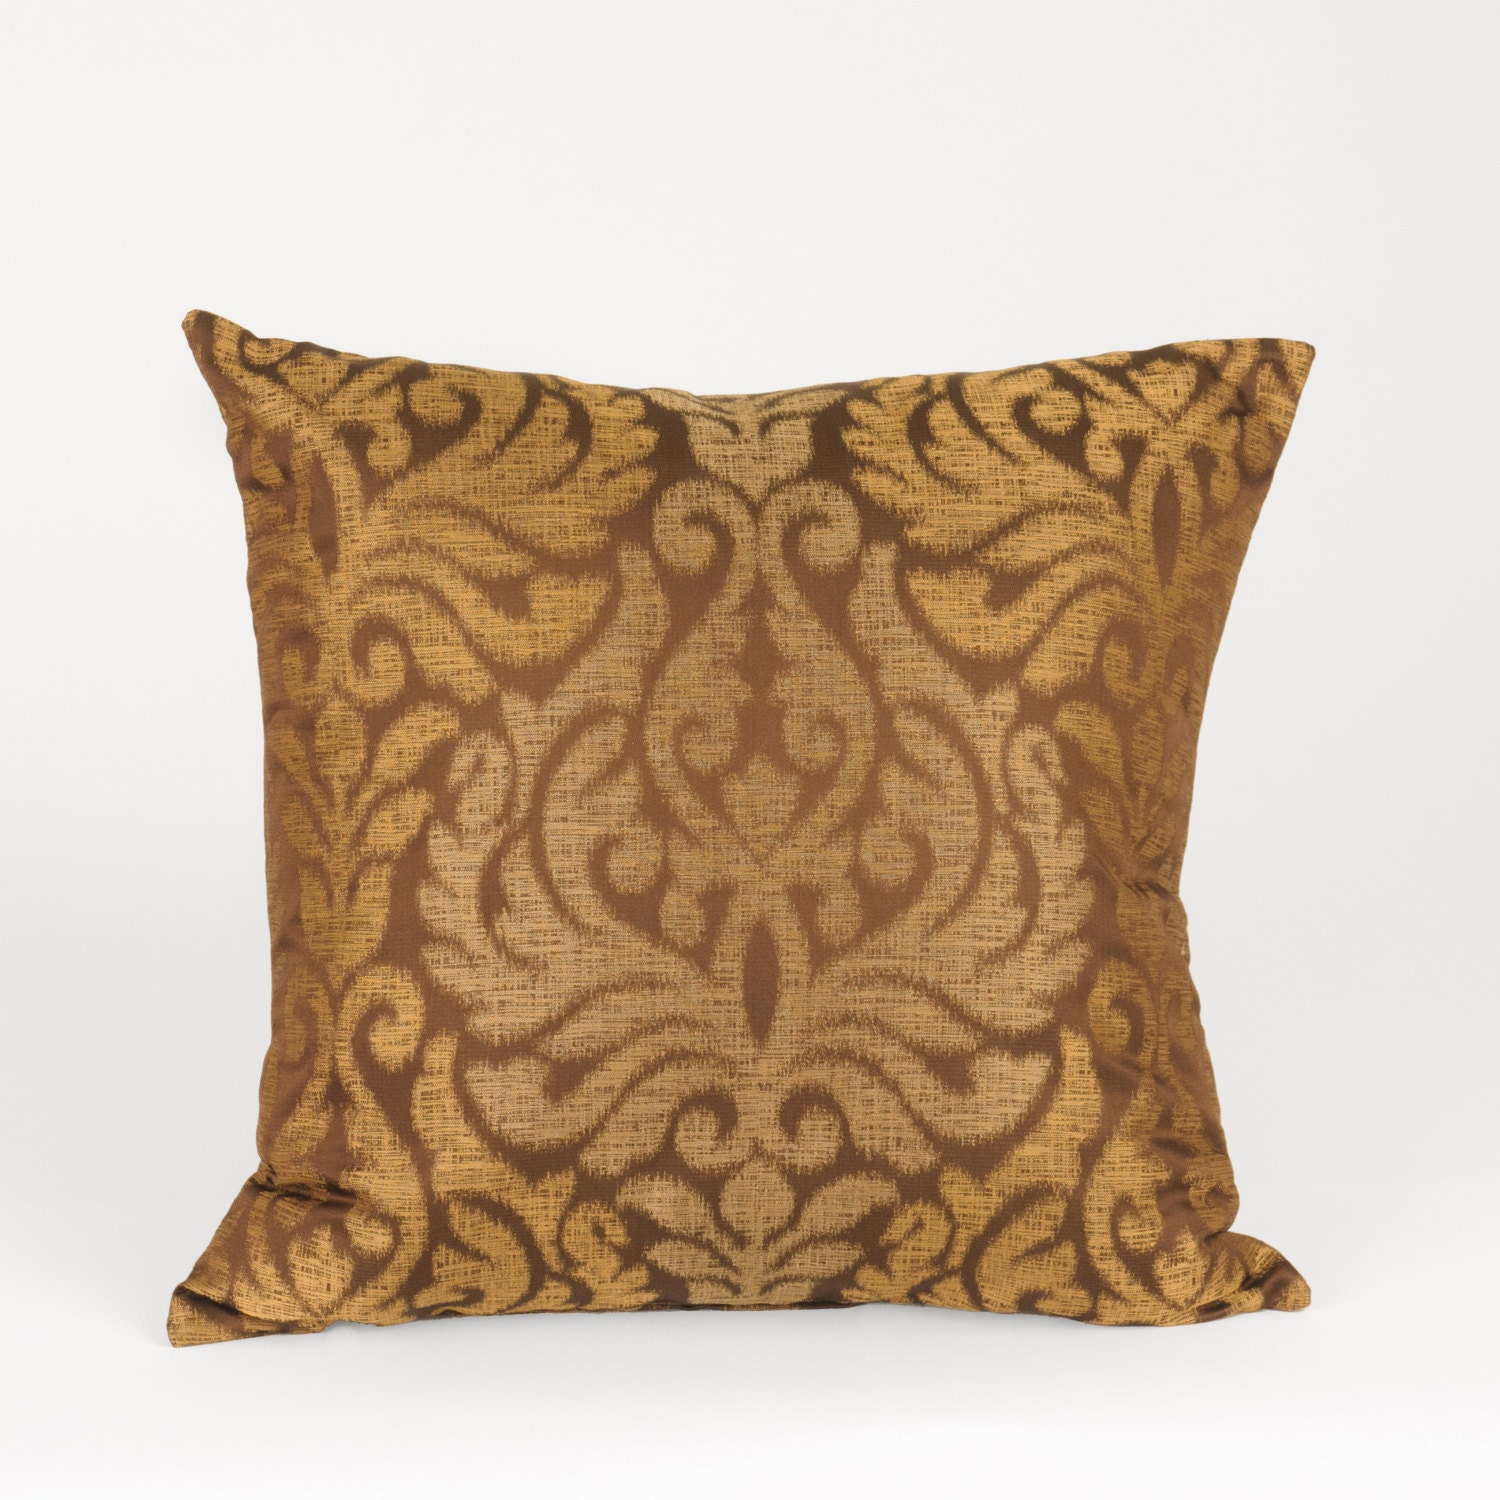 Damask Print Home Decor Accent Pillow Copper Colored by